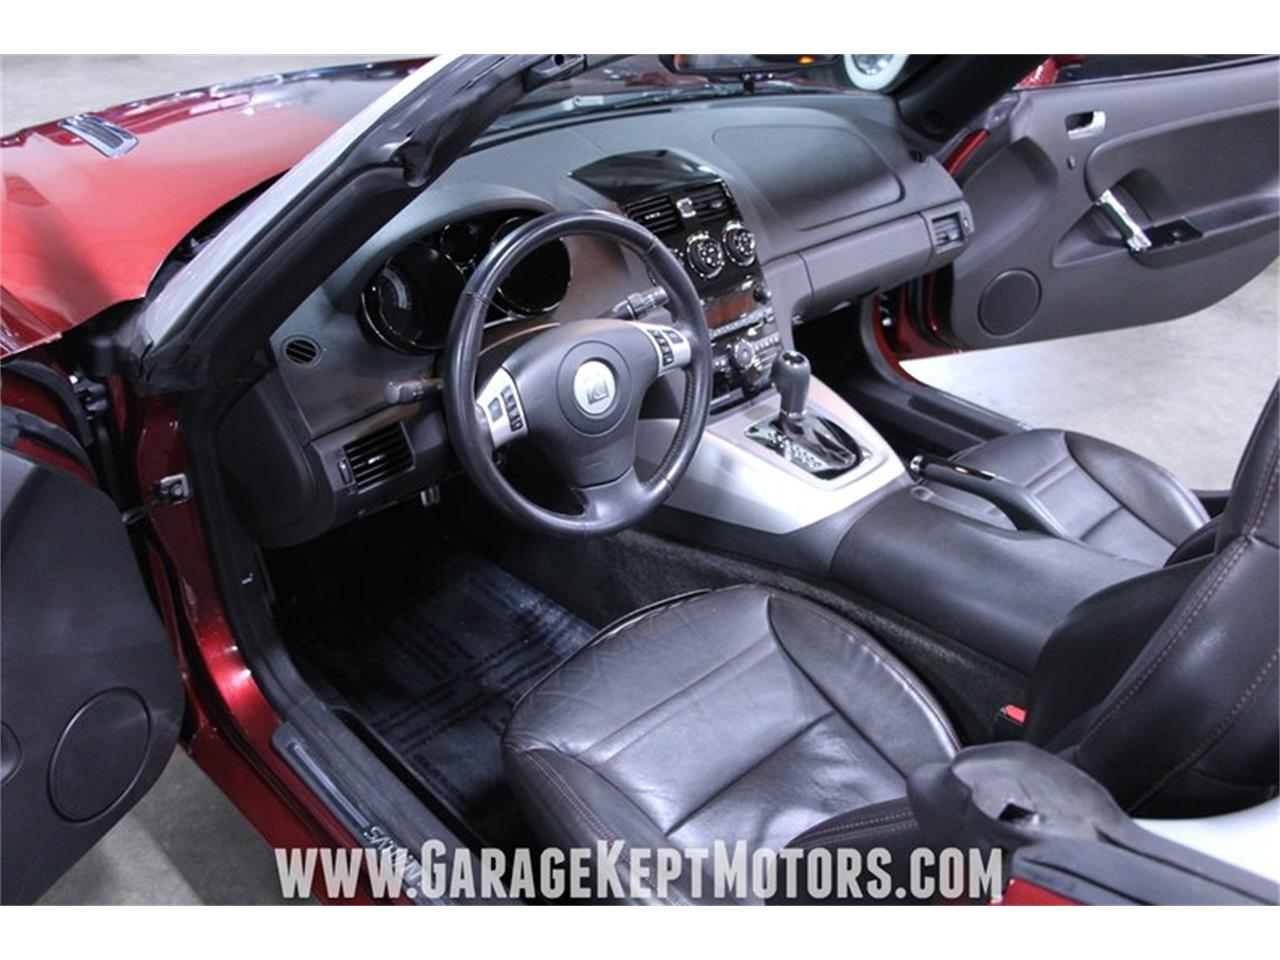 2009 Saturn Sky for sale in Grand Rapids, MI – photo 61